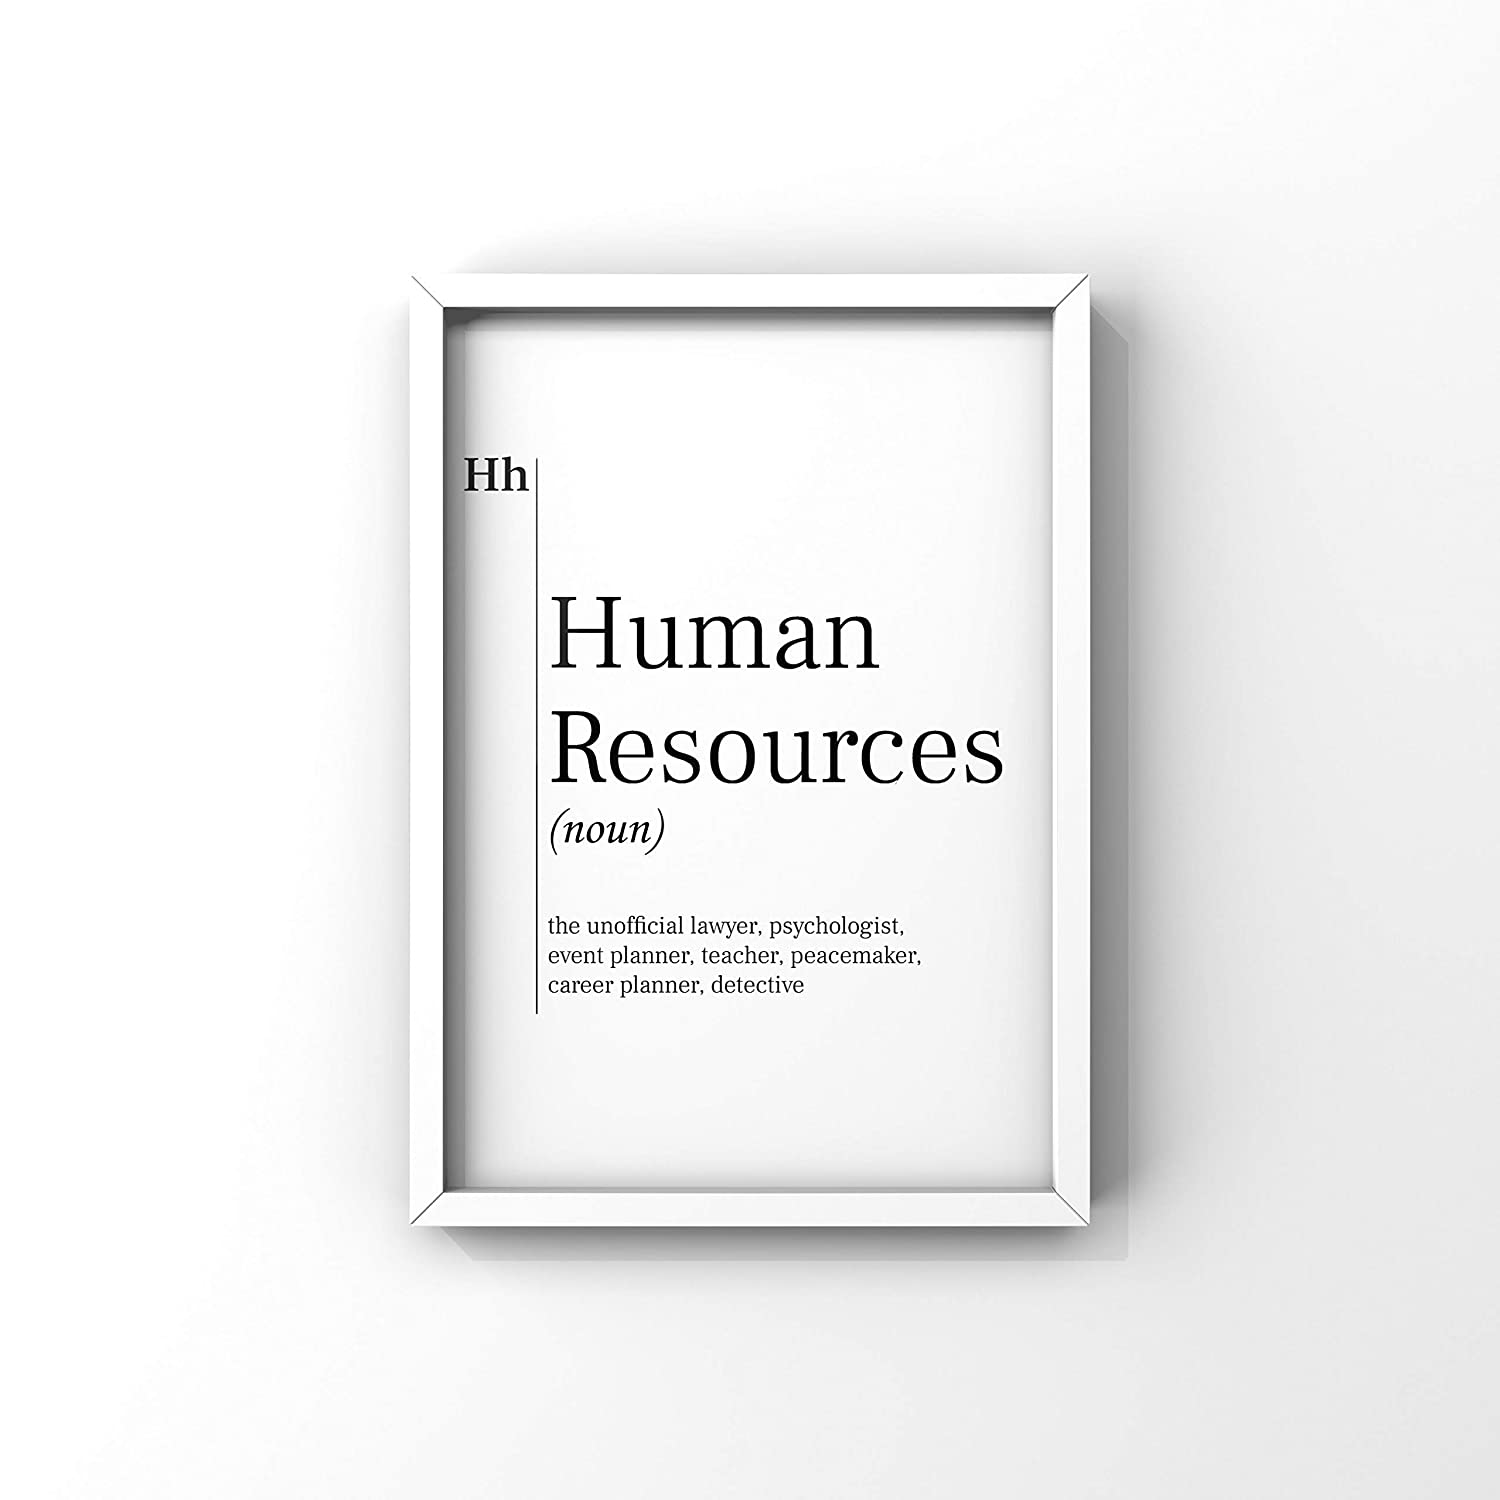 Human Resources Funny Dictionary Definition Printable, Recruiter Funny Gift, Job Definition Poster Print, Human Resource Department Wall Art